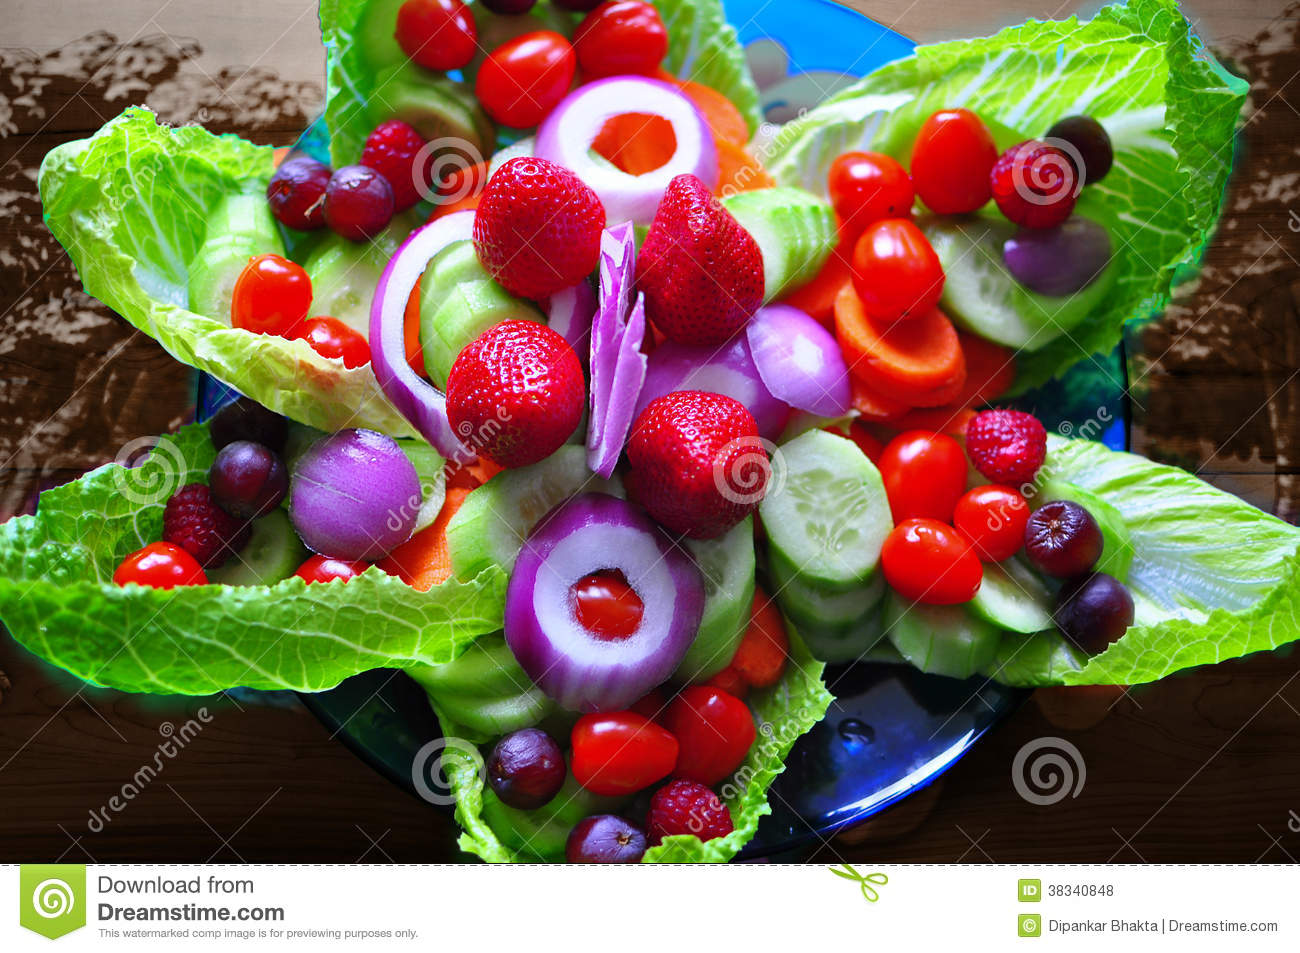 Food art flower pattern with fruits and salad royalty for Art of food decoration